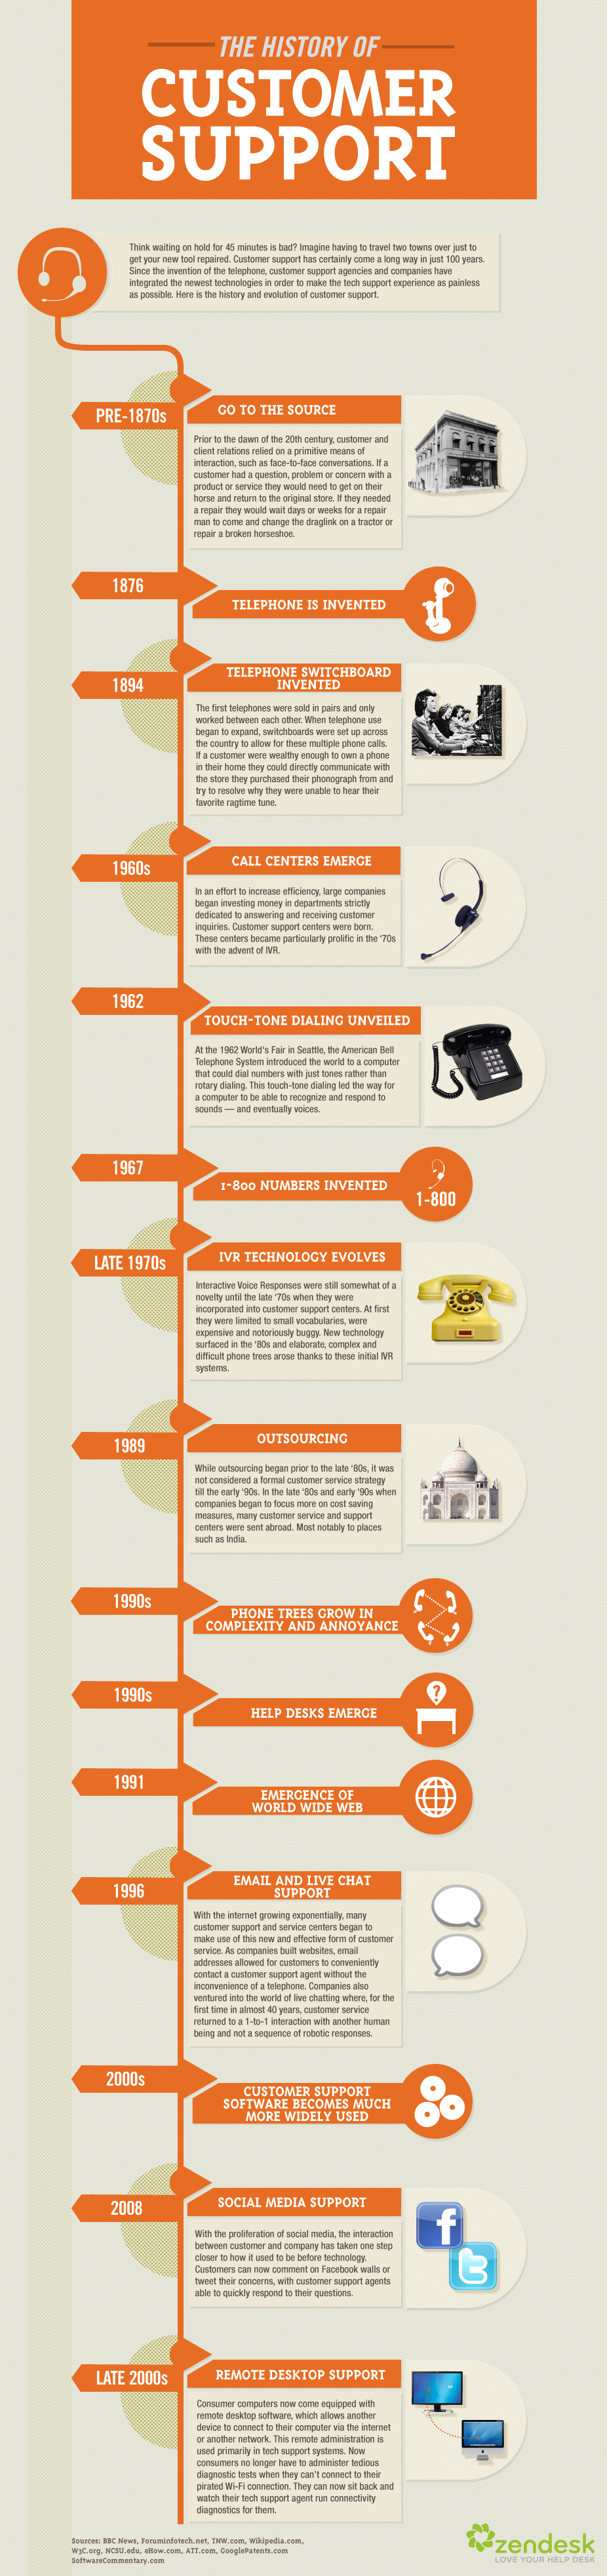 The History of Customer Support help desk software